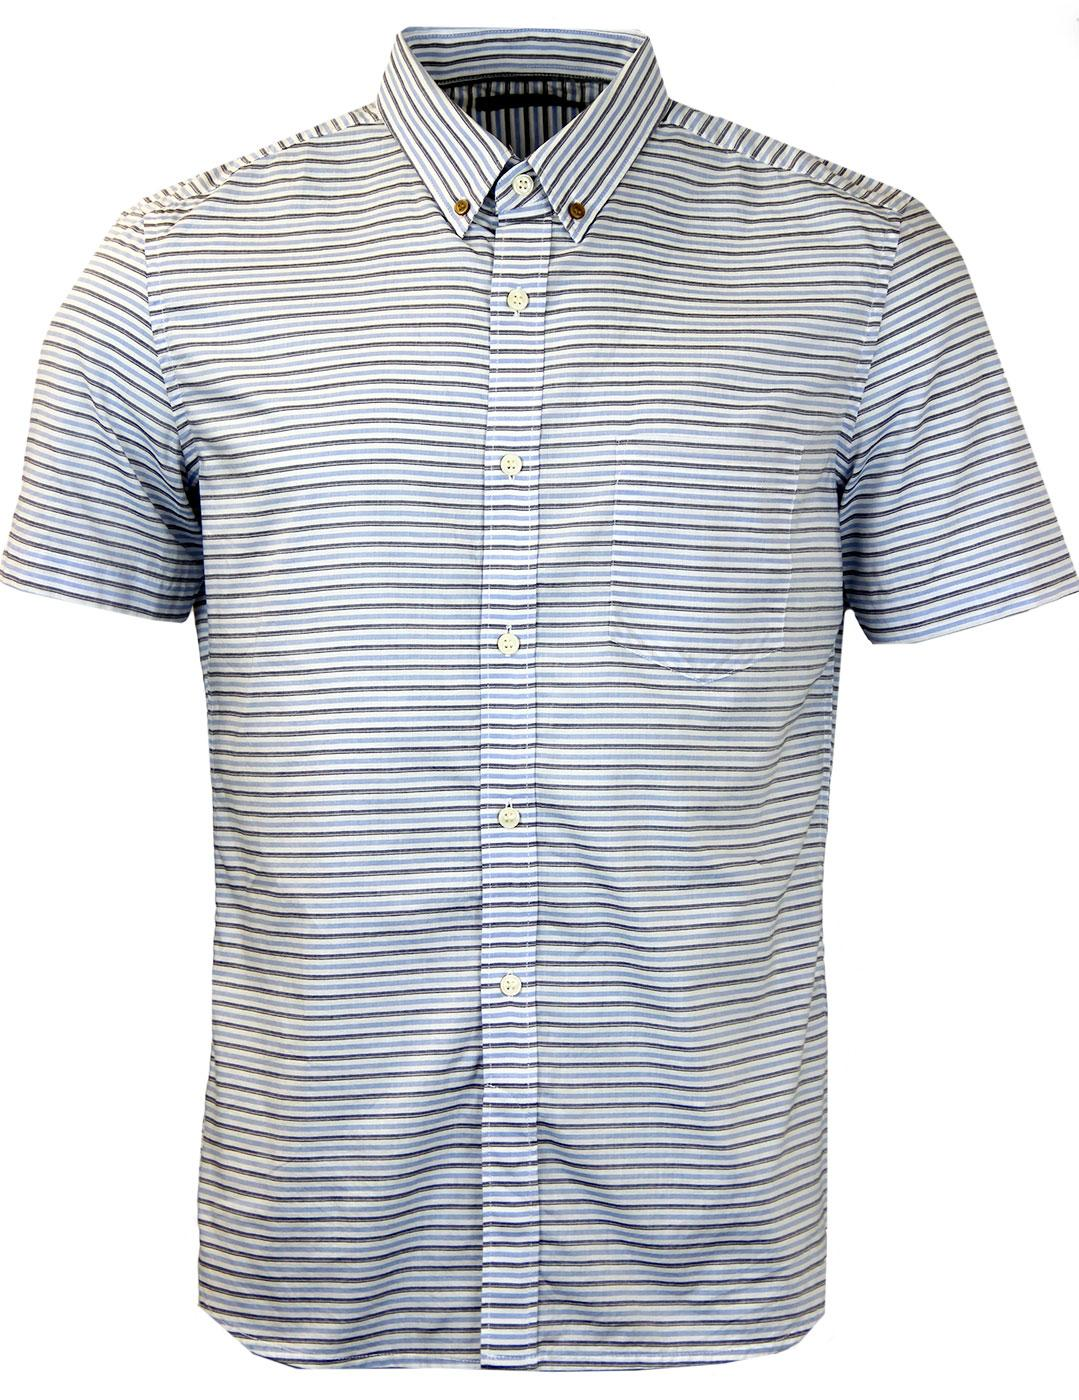 Boilly FRENCH CONNECTION Horizontal Stripe Shirt